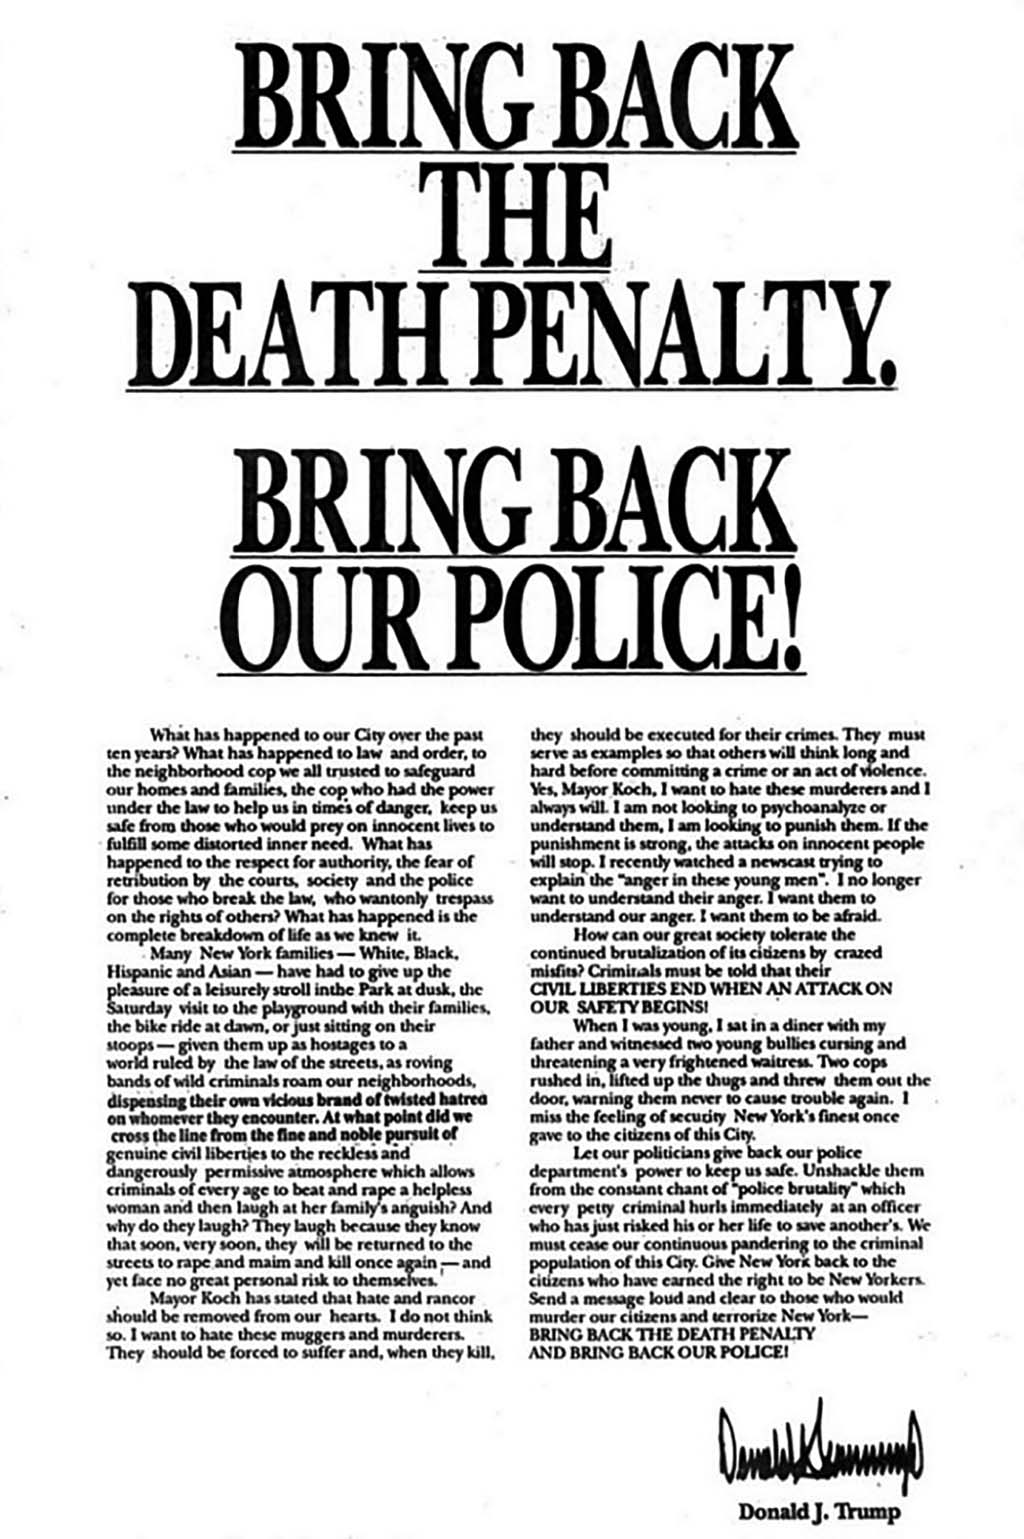 Trump's ad on the front pages of NYC images in 1989 asking for the return of the death penalty for the Central Park Five.